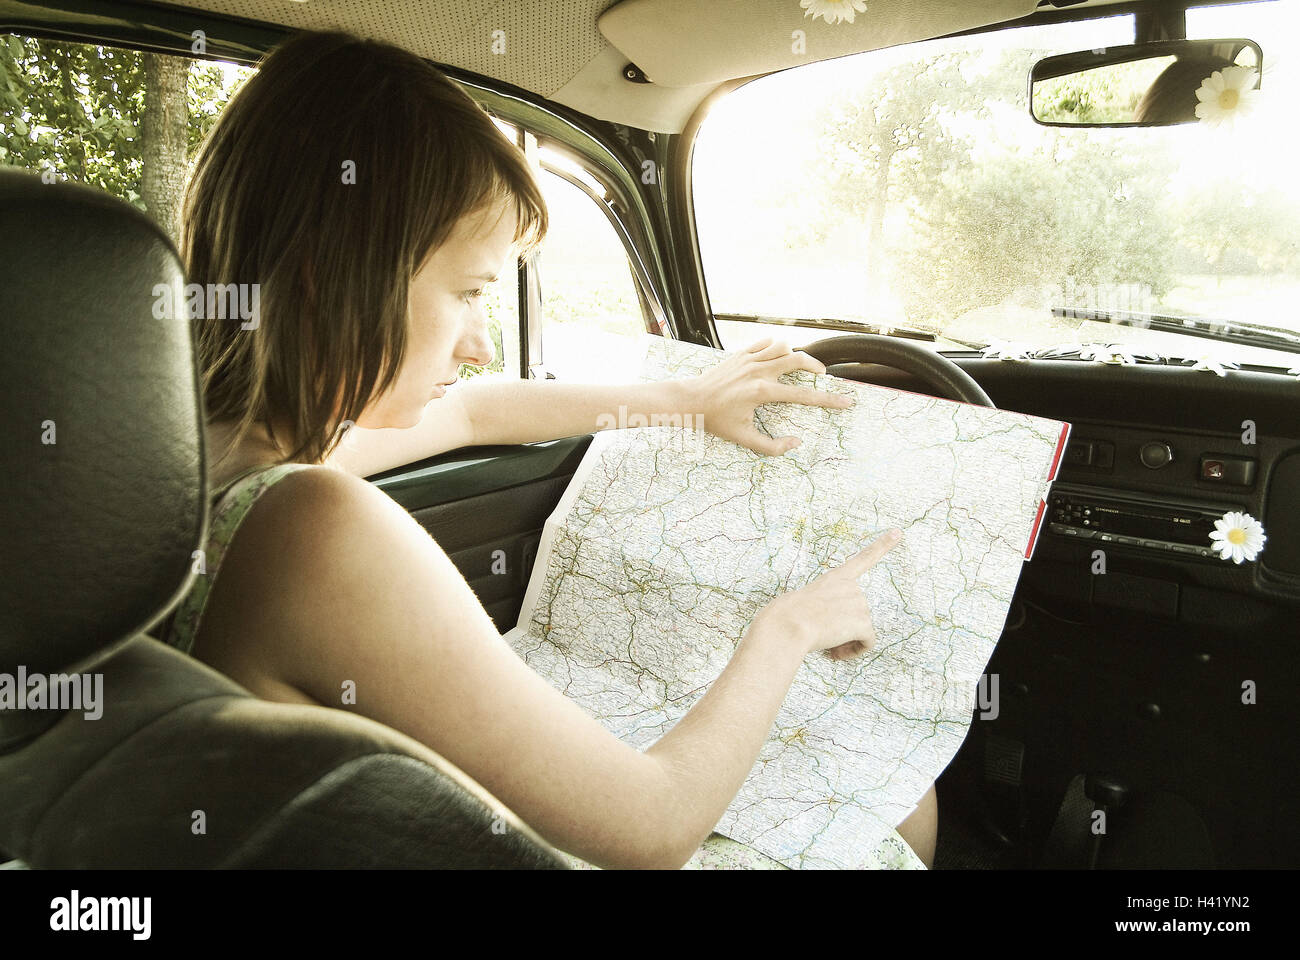 Car woman young drifting map read 2030 years darkhaired